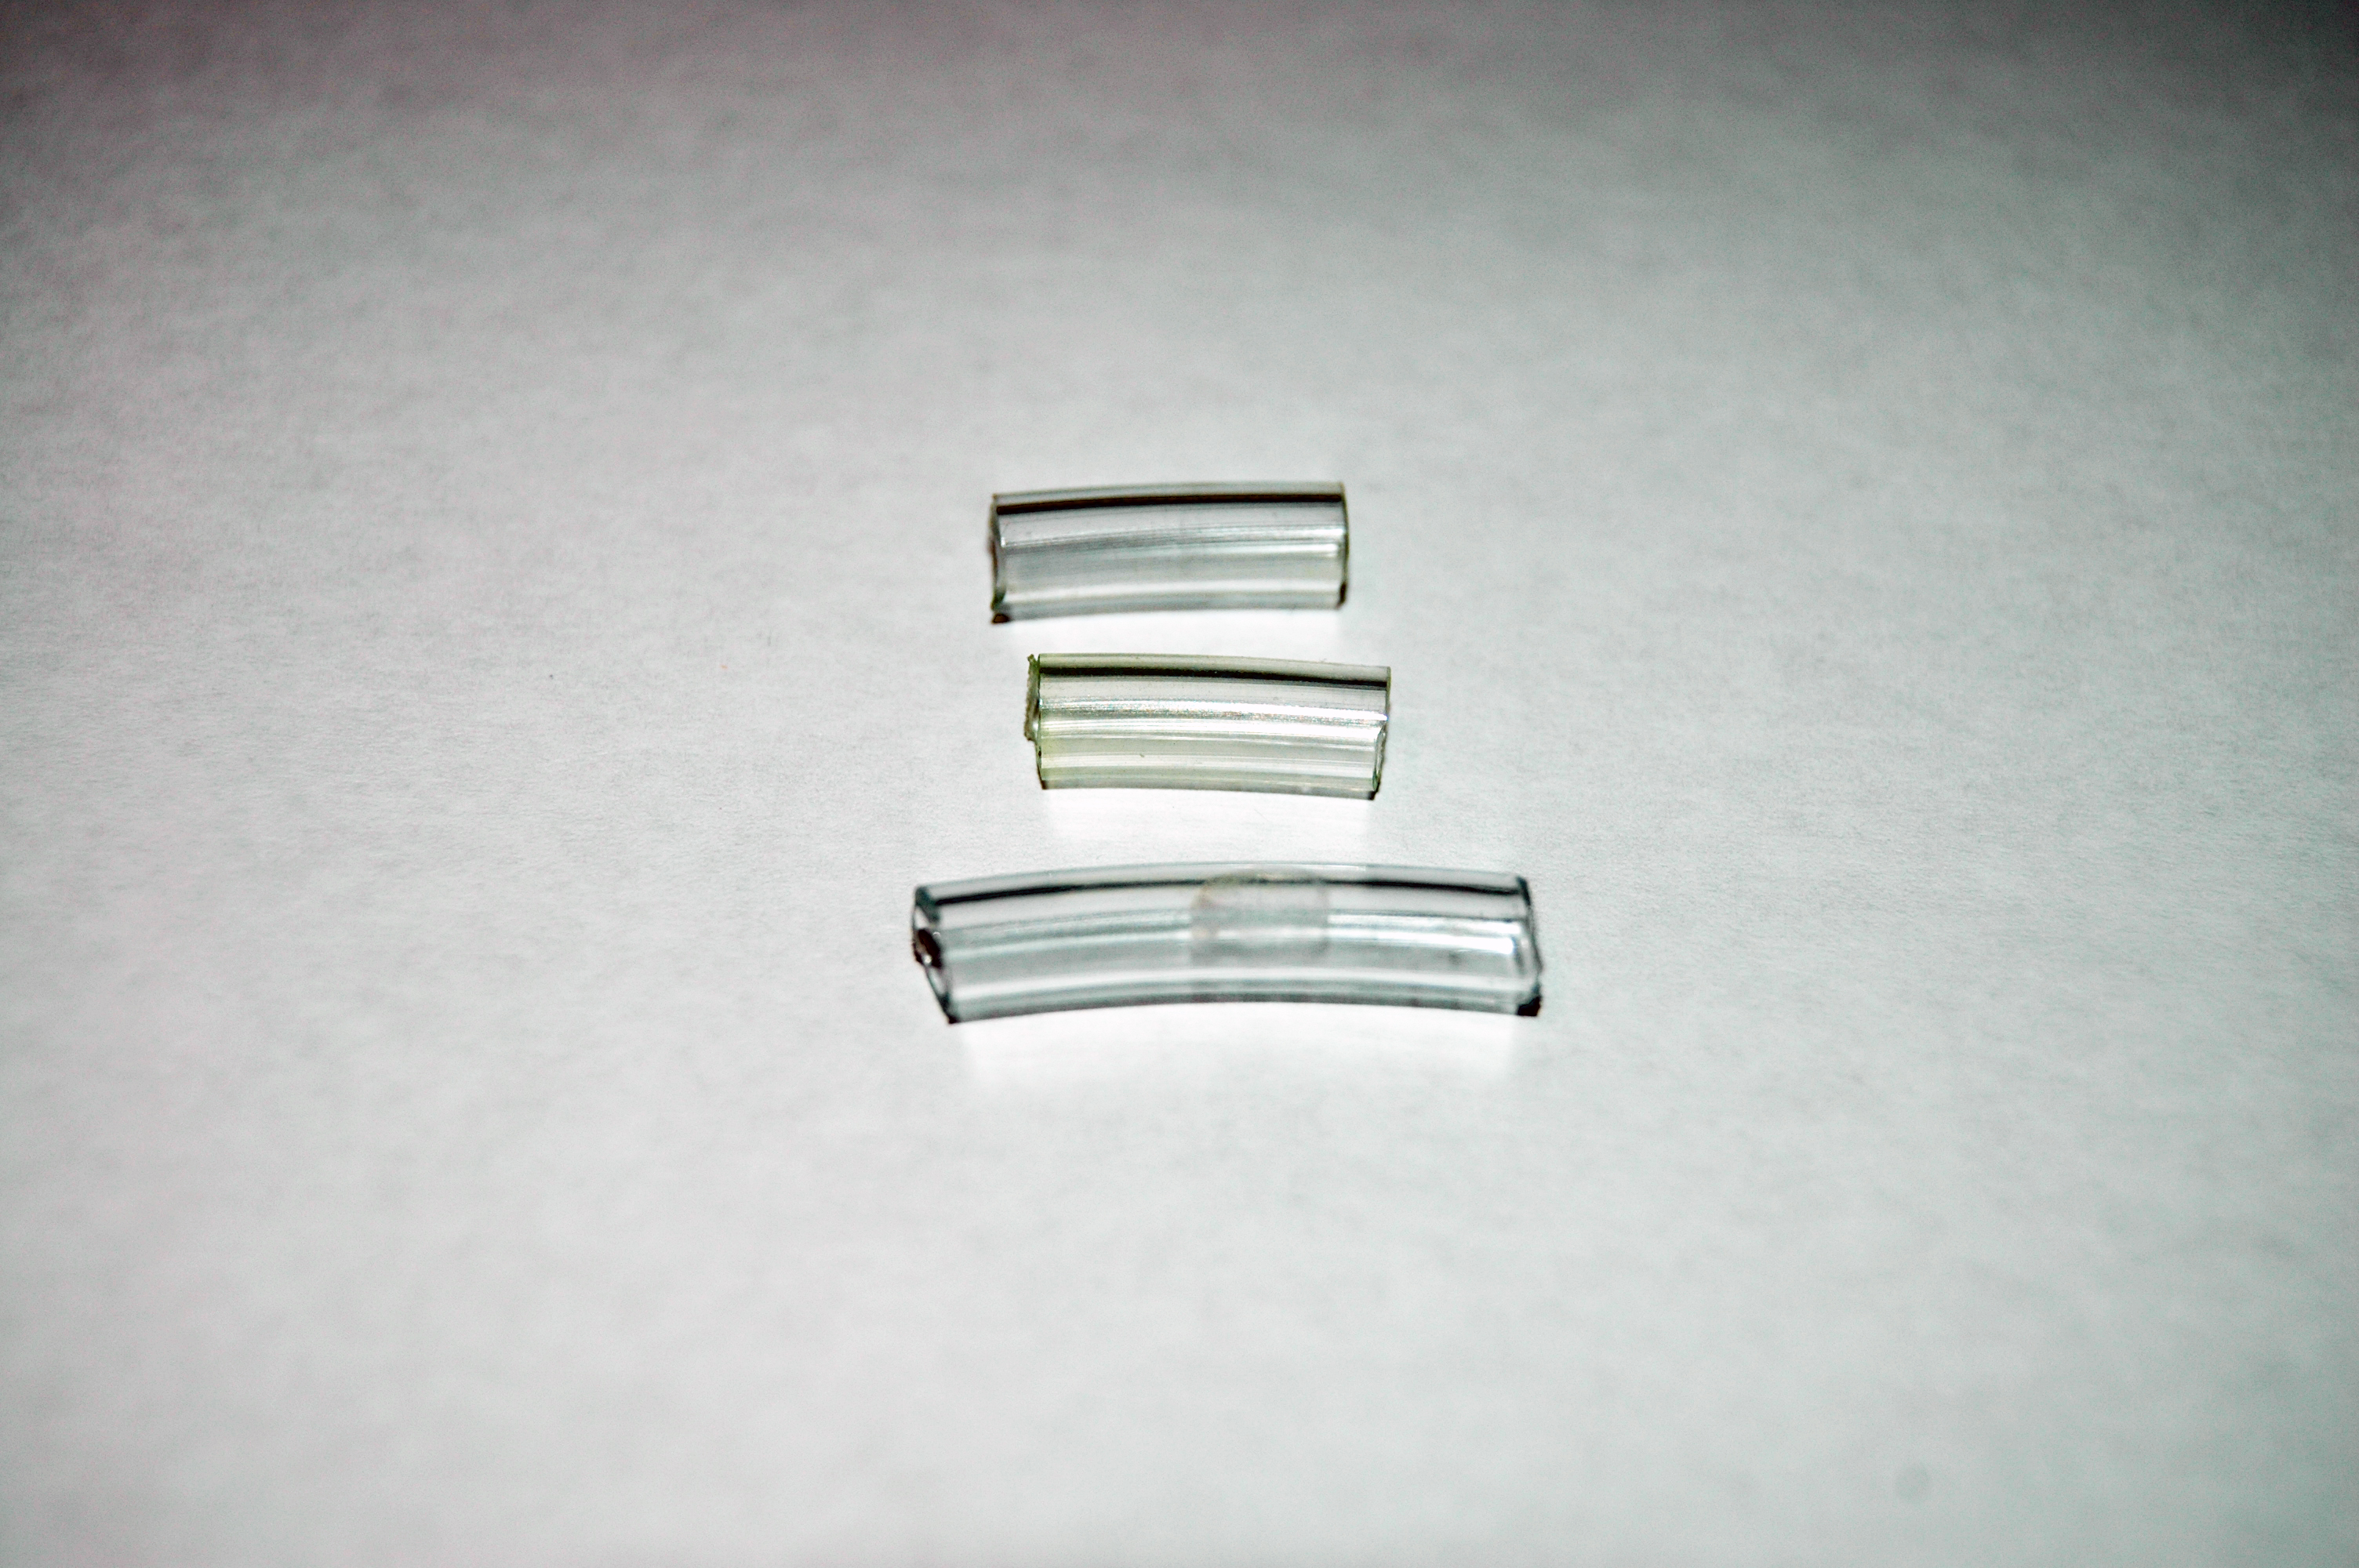 Picture of Cut Rubber Tubing